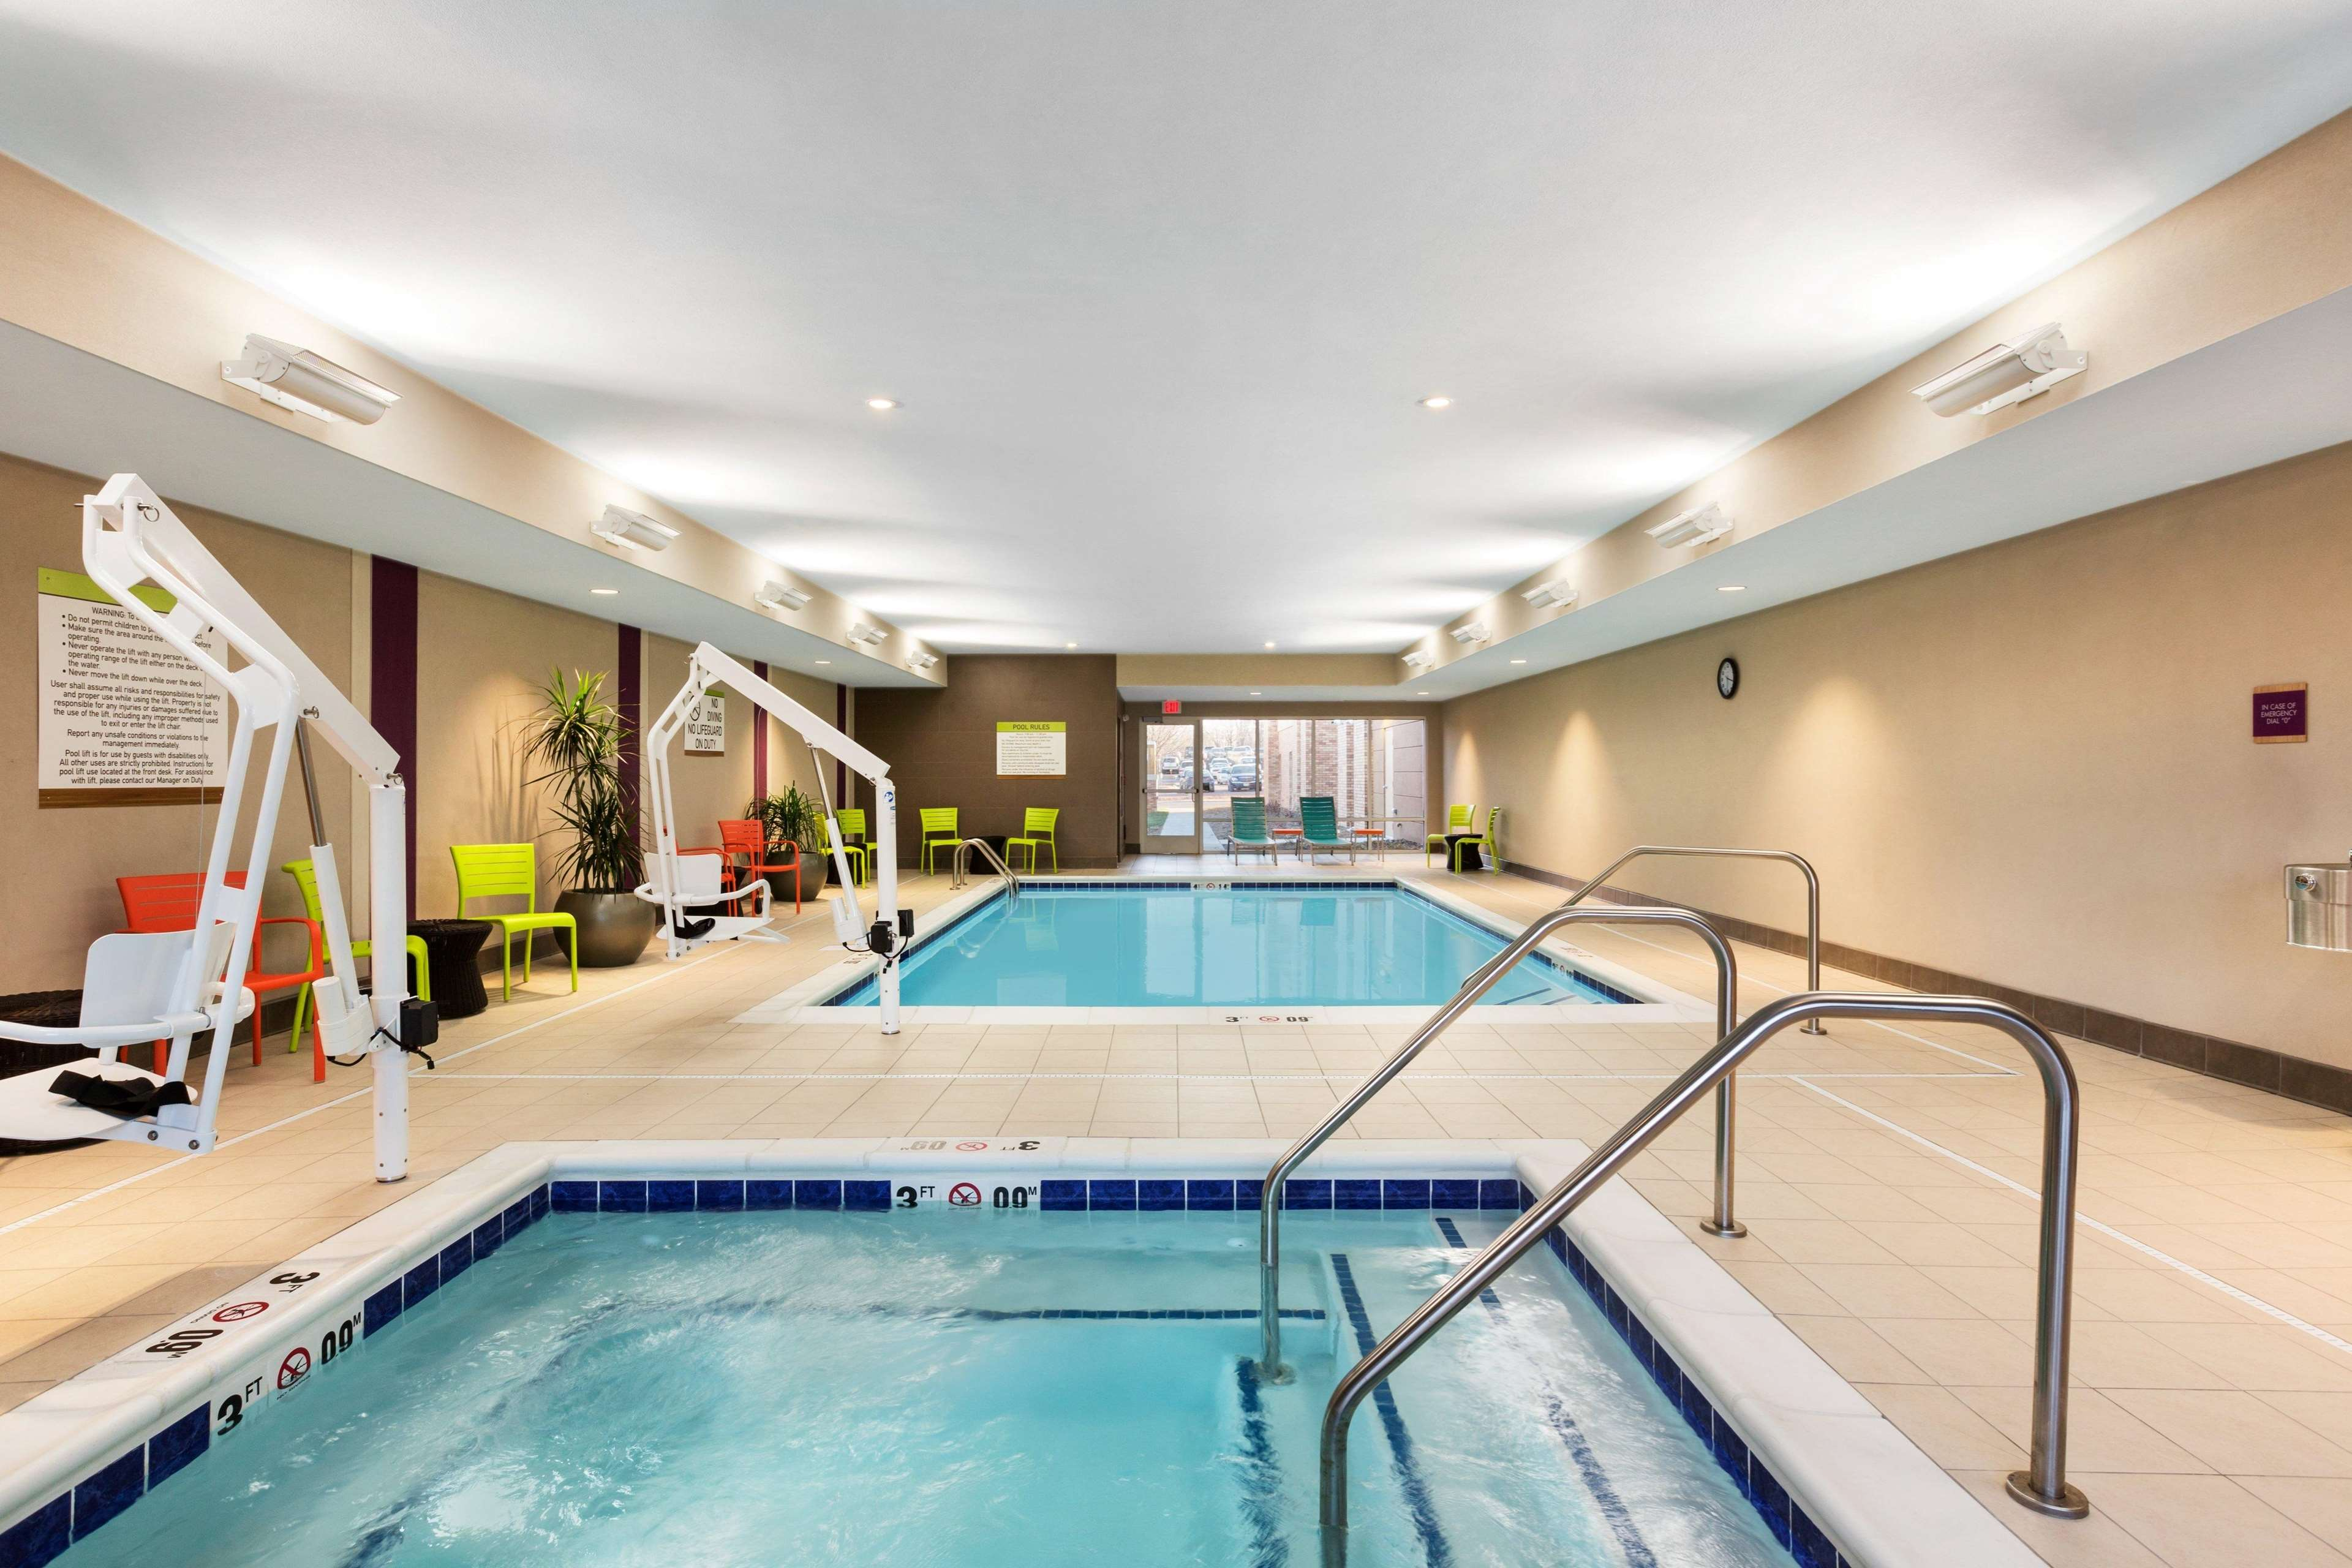 Hotels Near Sanford Medical Center Sioux Falls Sd